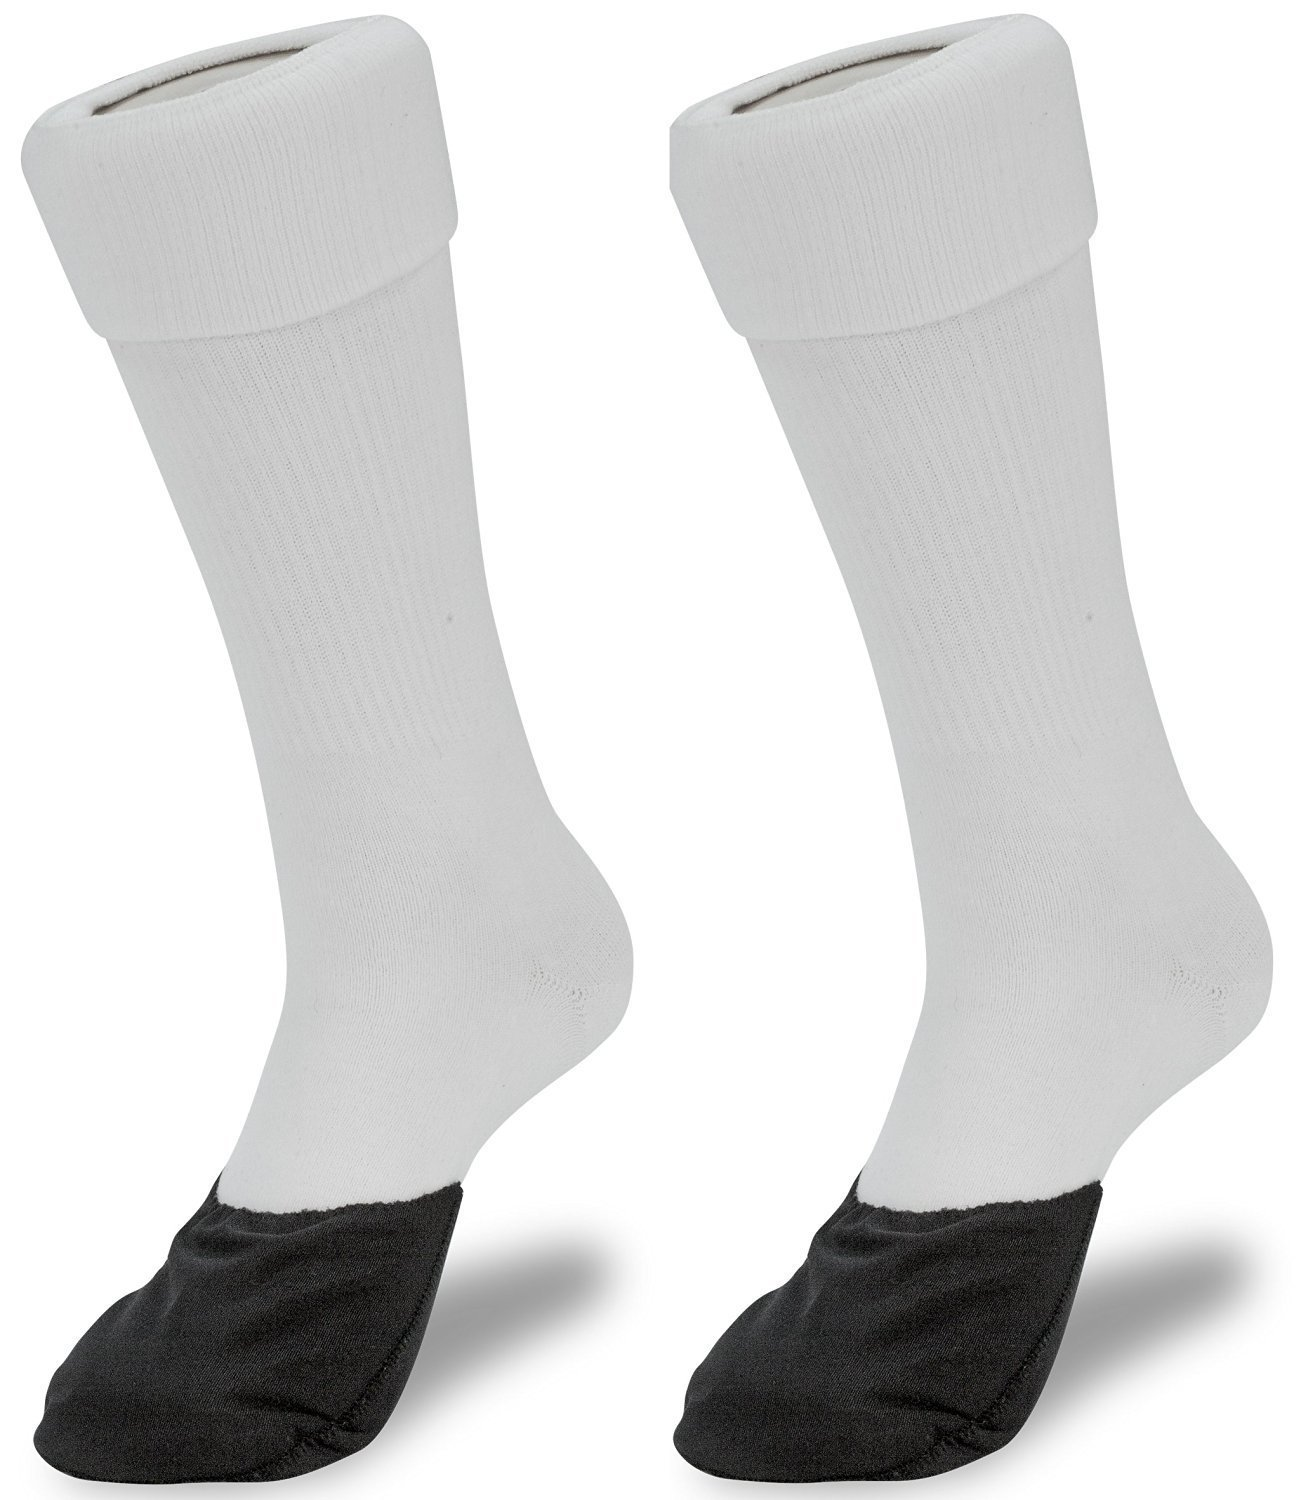 GlideWear Forefoot Protection Sock | Diabetic, Ulcers, Calluses, Blisters | White, Medium